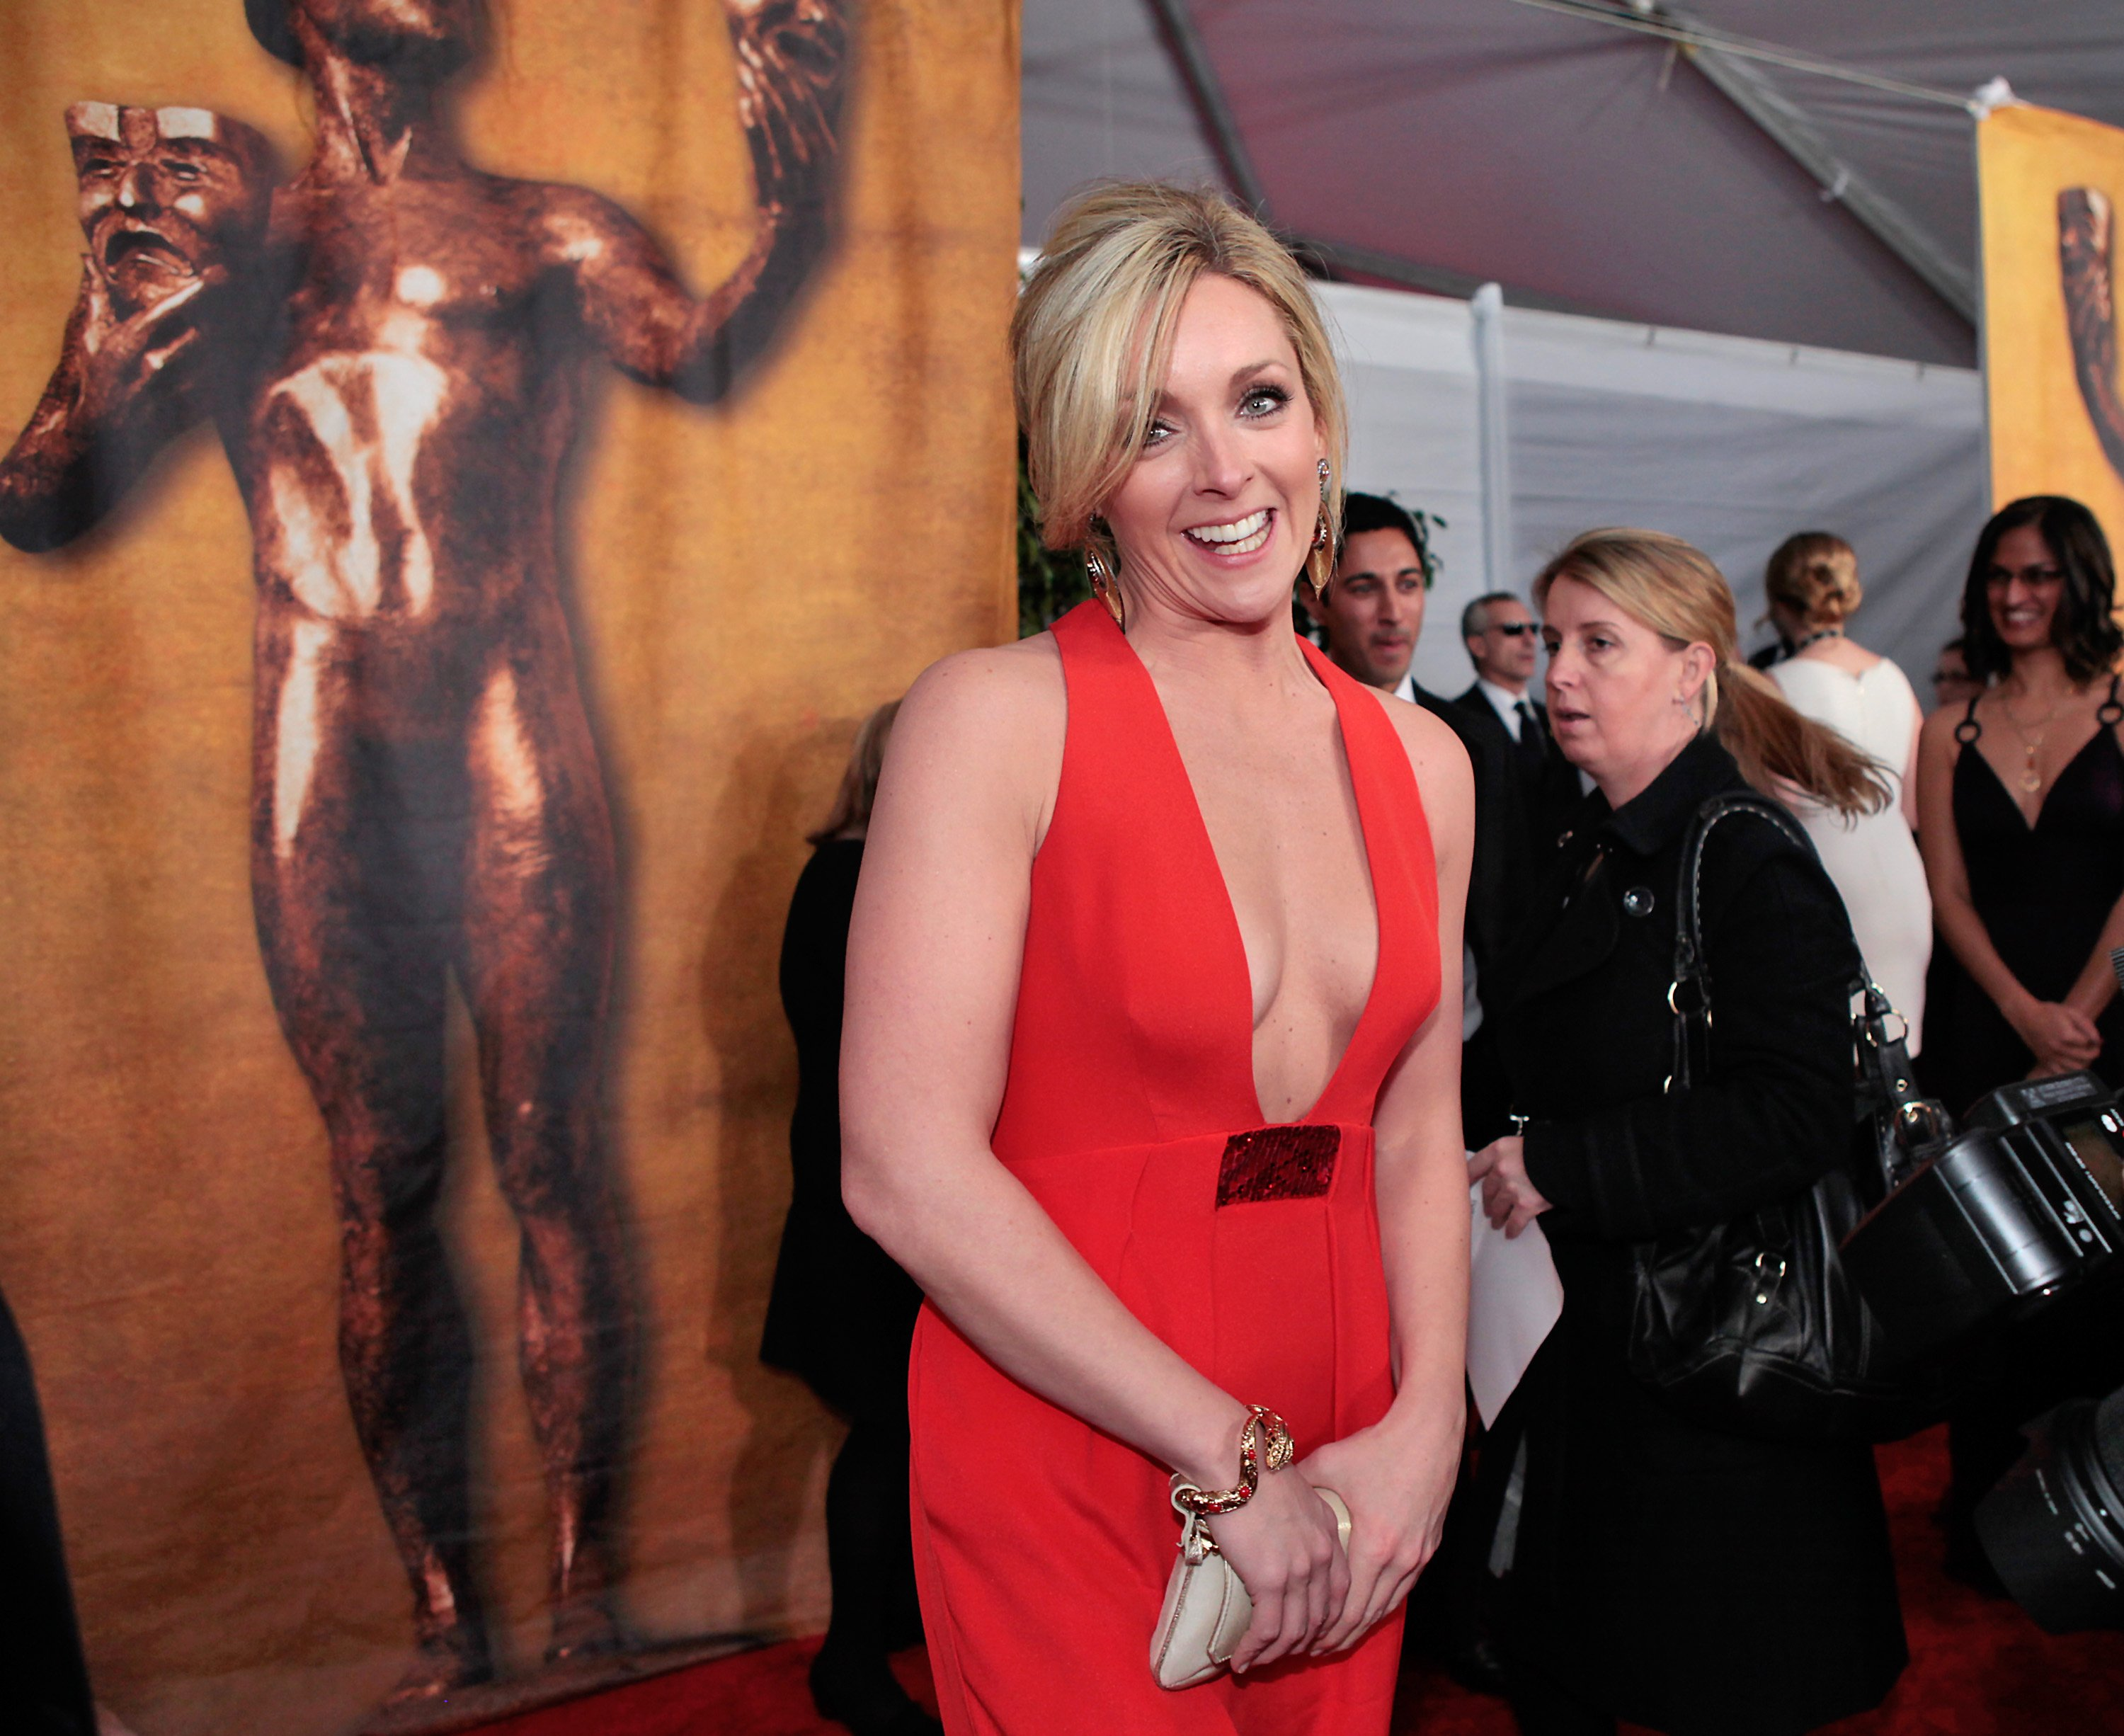 32550_Celebutopia-Jane_Krakowski_arrives_at_the_15th_Annual_Screen_Actors_Guild_Awards-02_122_134lo.jpg